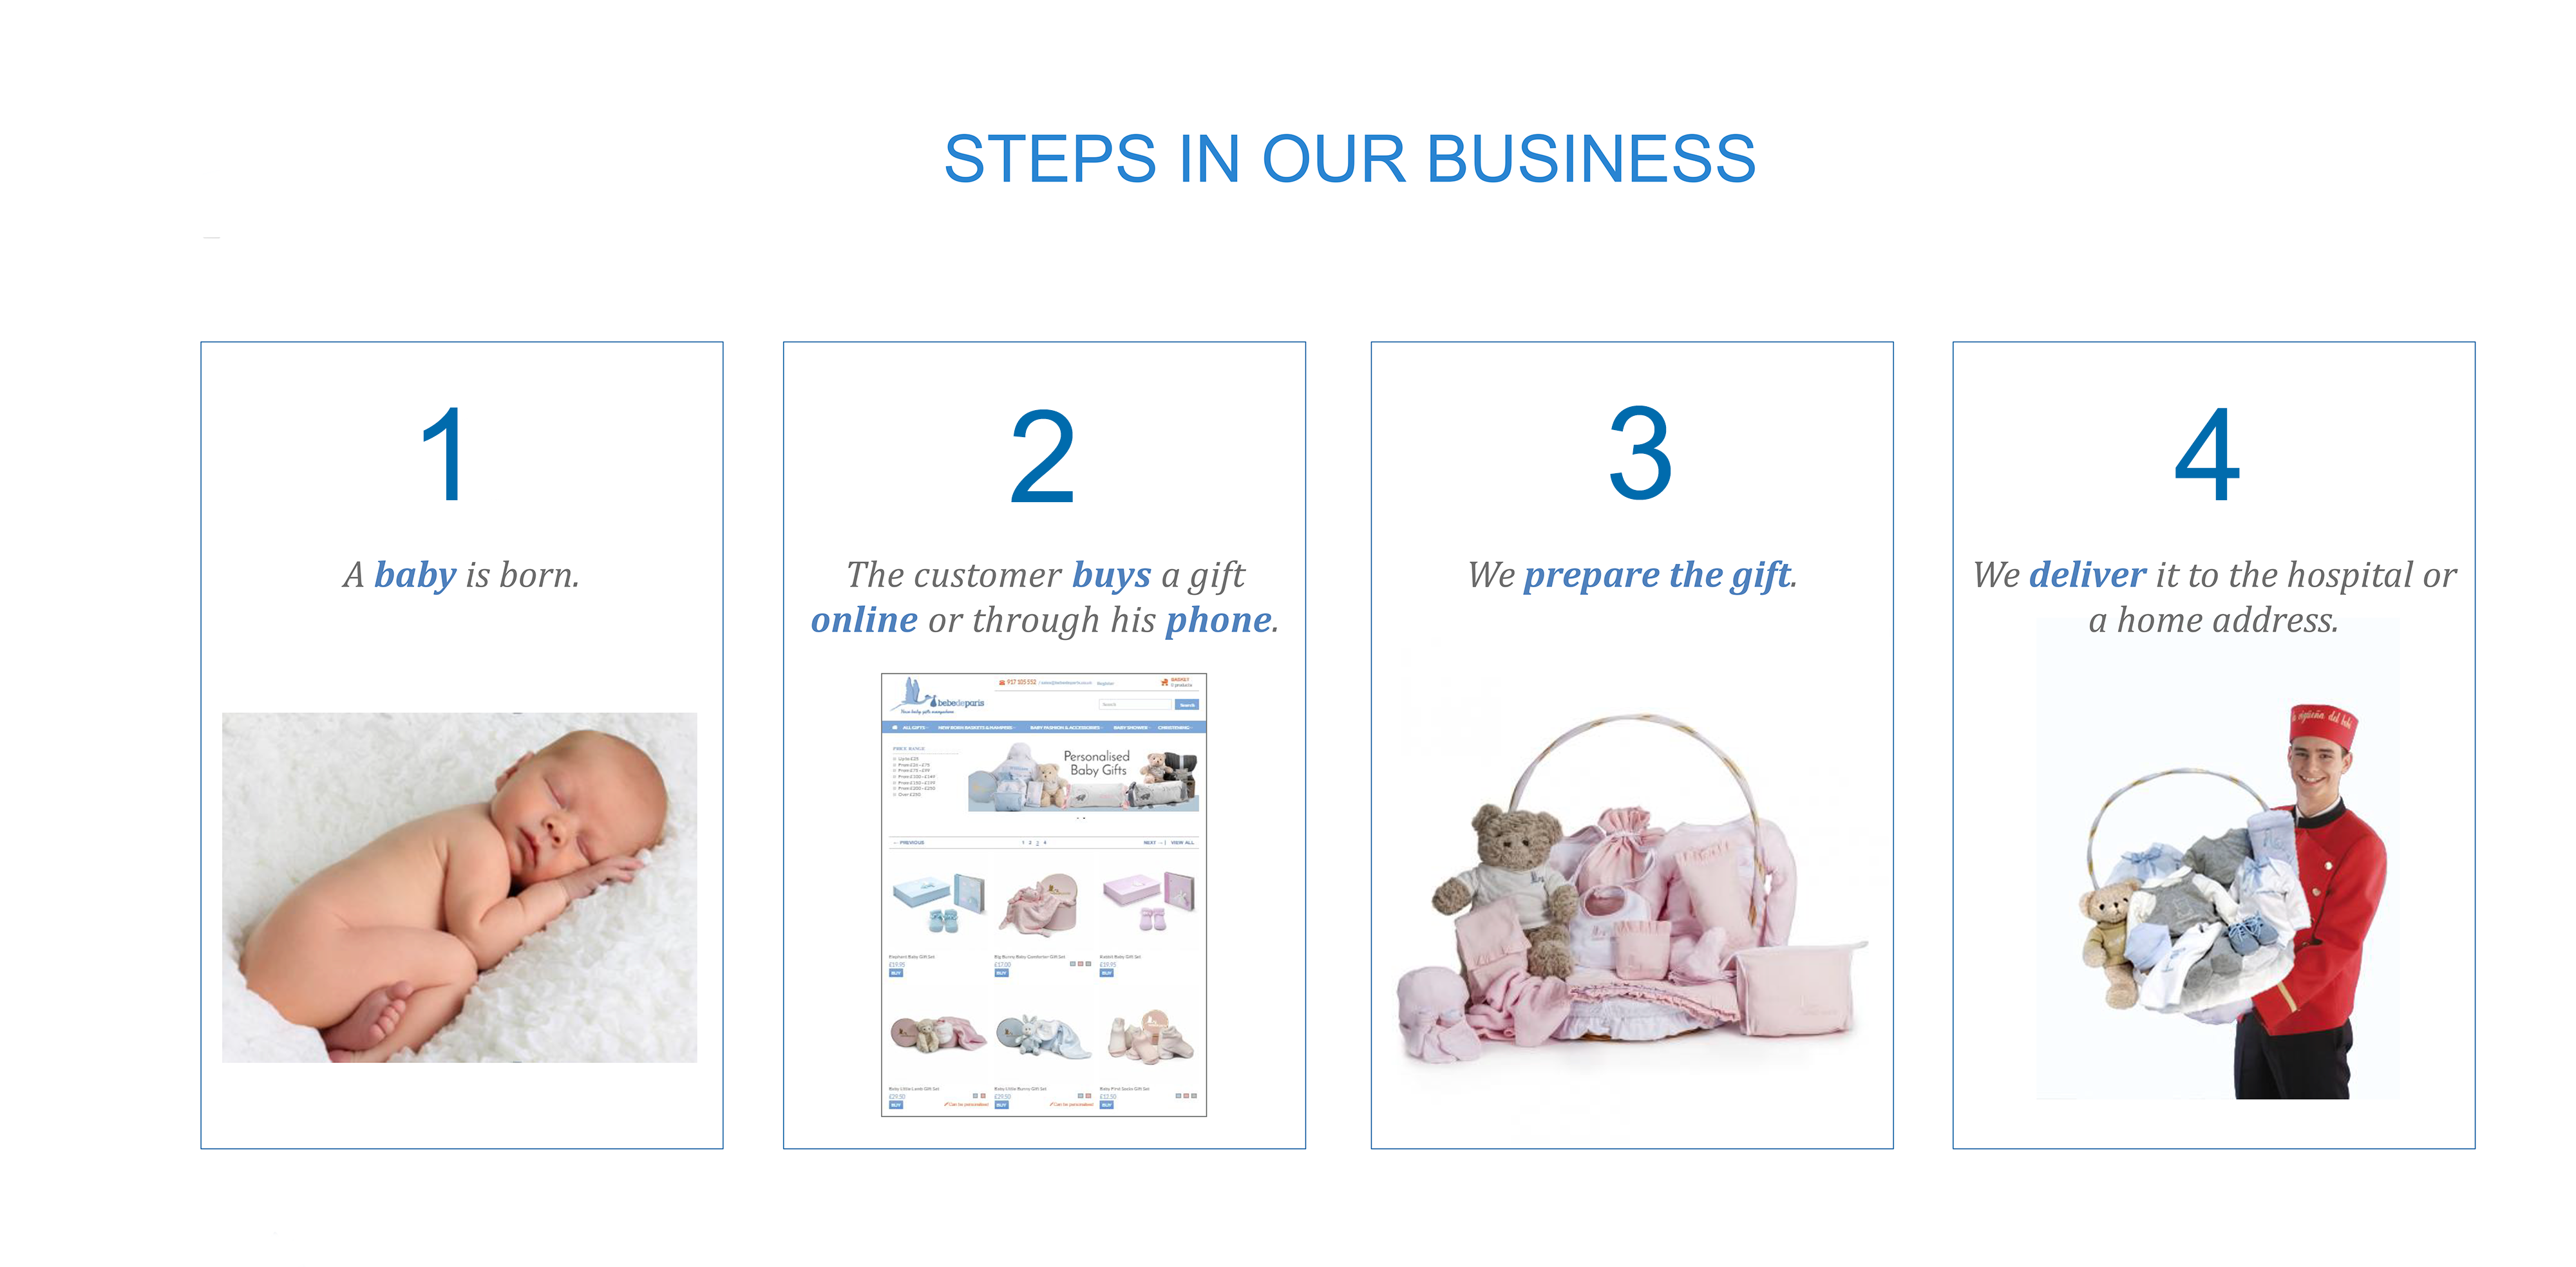 BebedeParis Franchise Steps